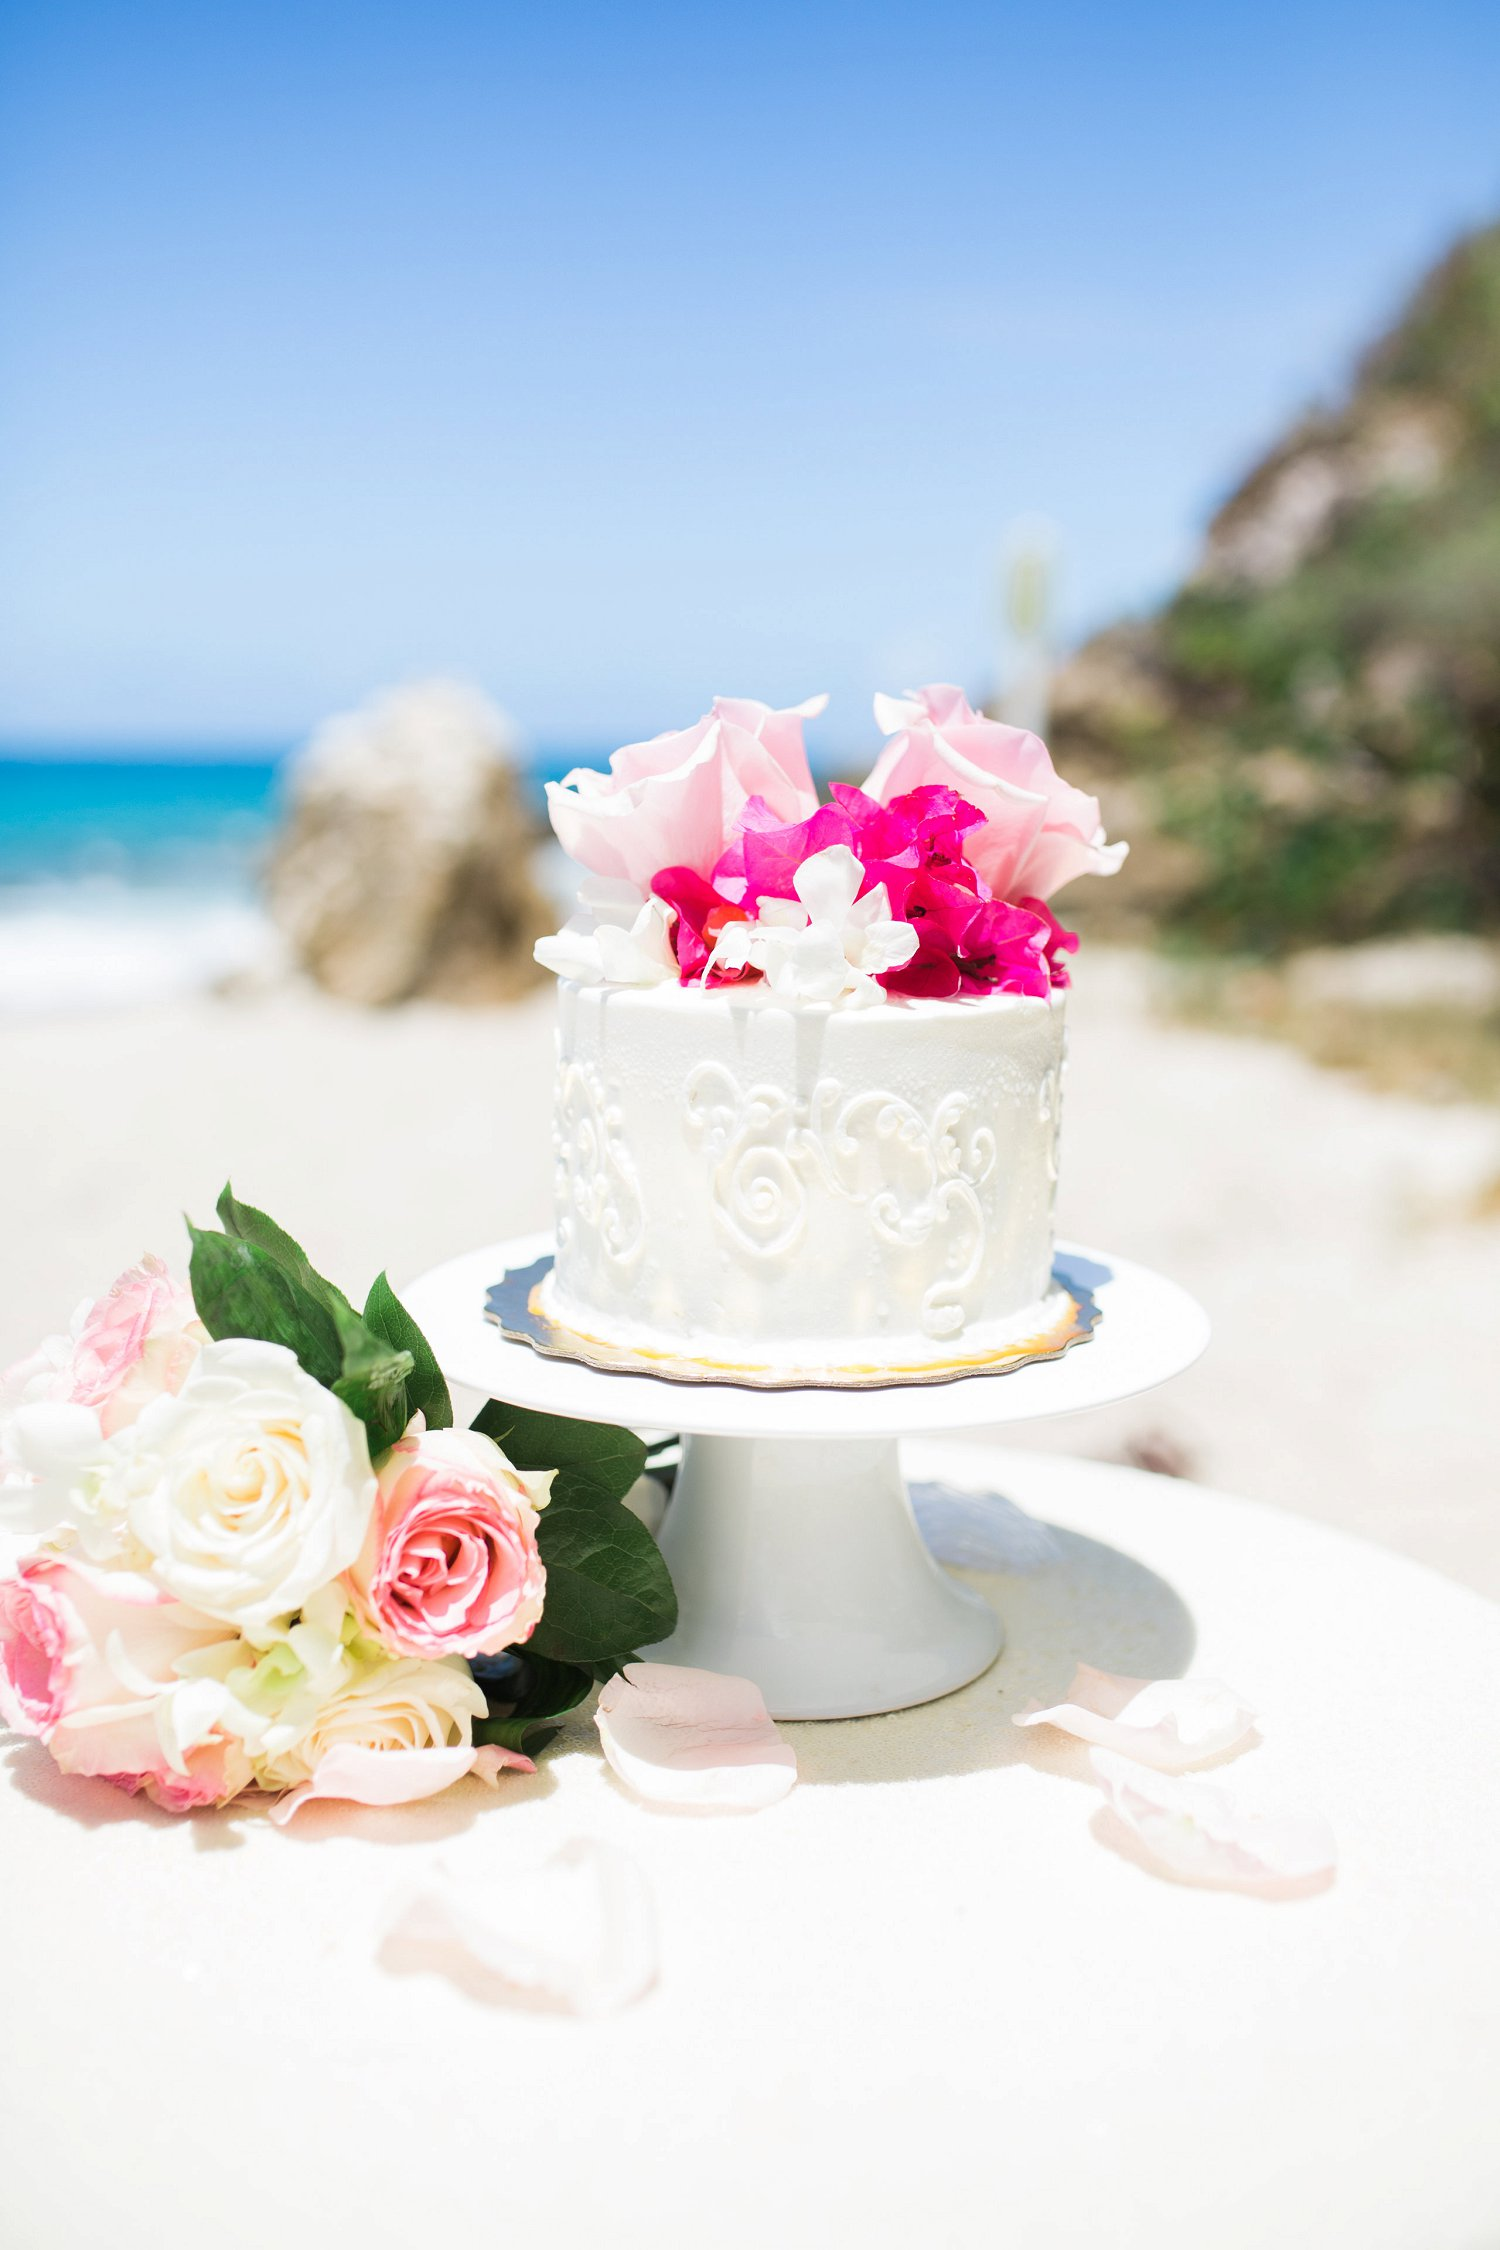 Mini wedding cake for beach vow renewal ceremony.